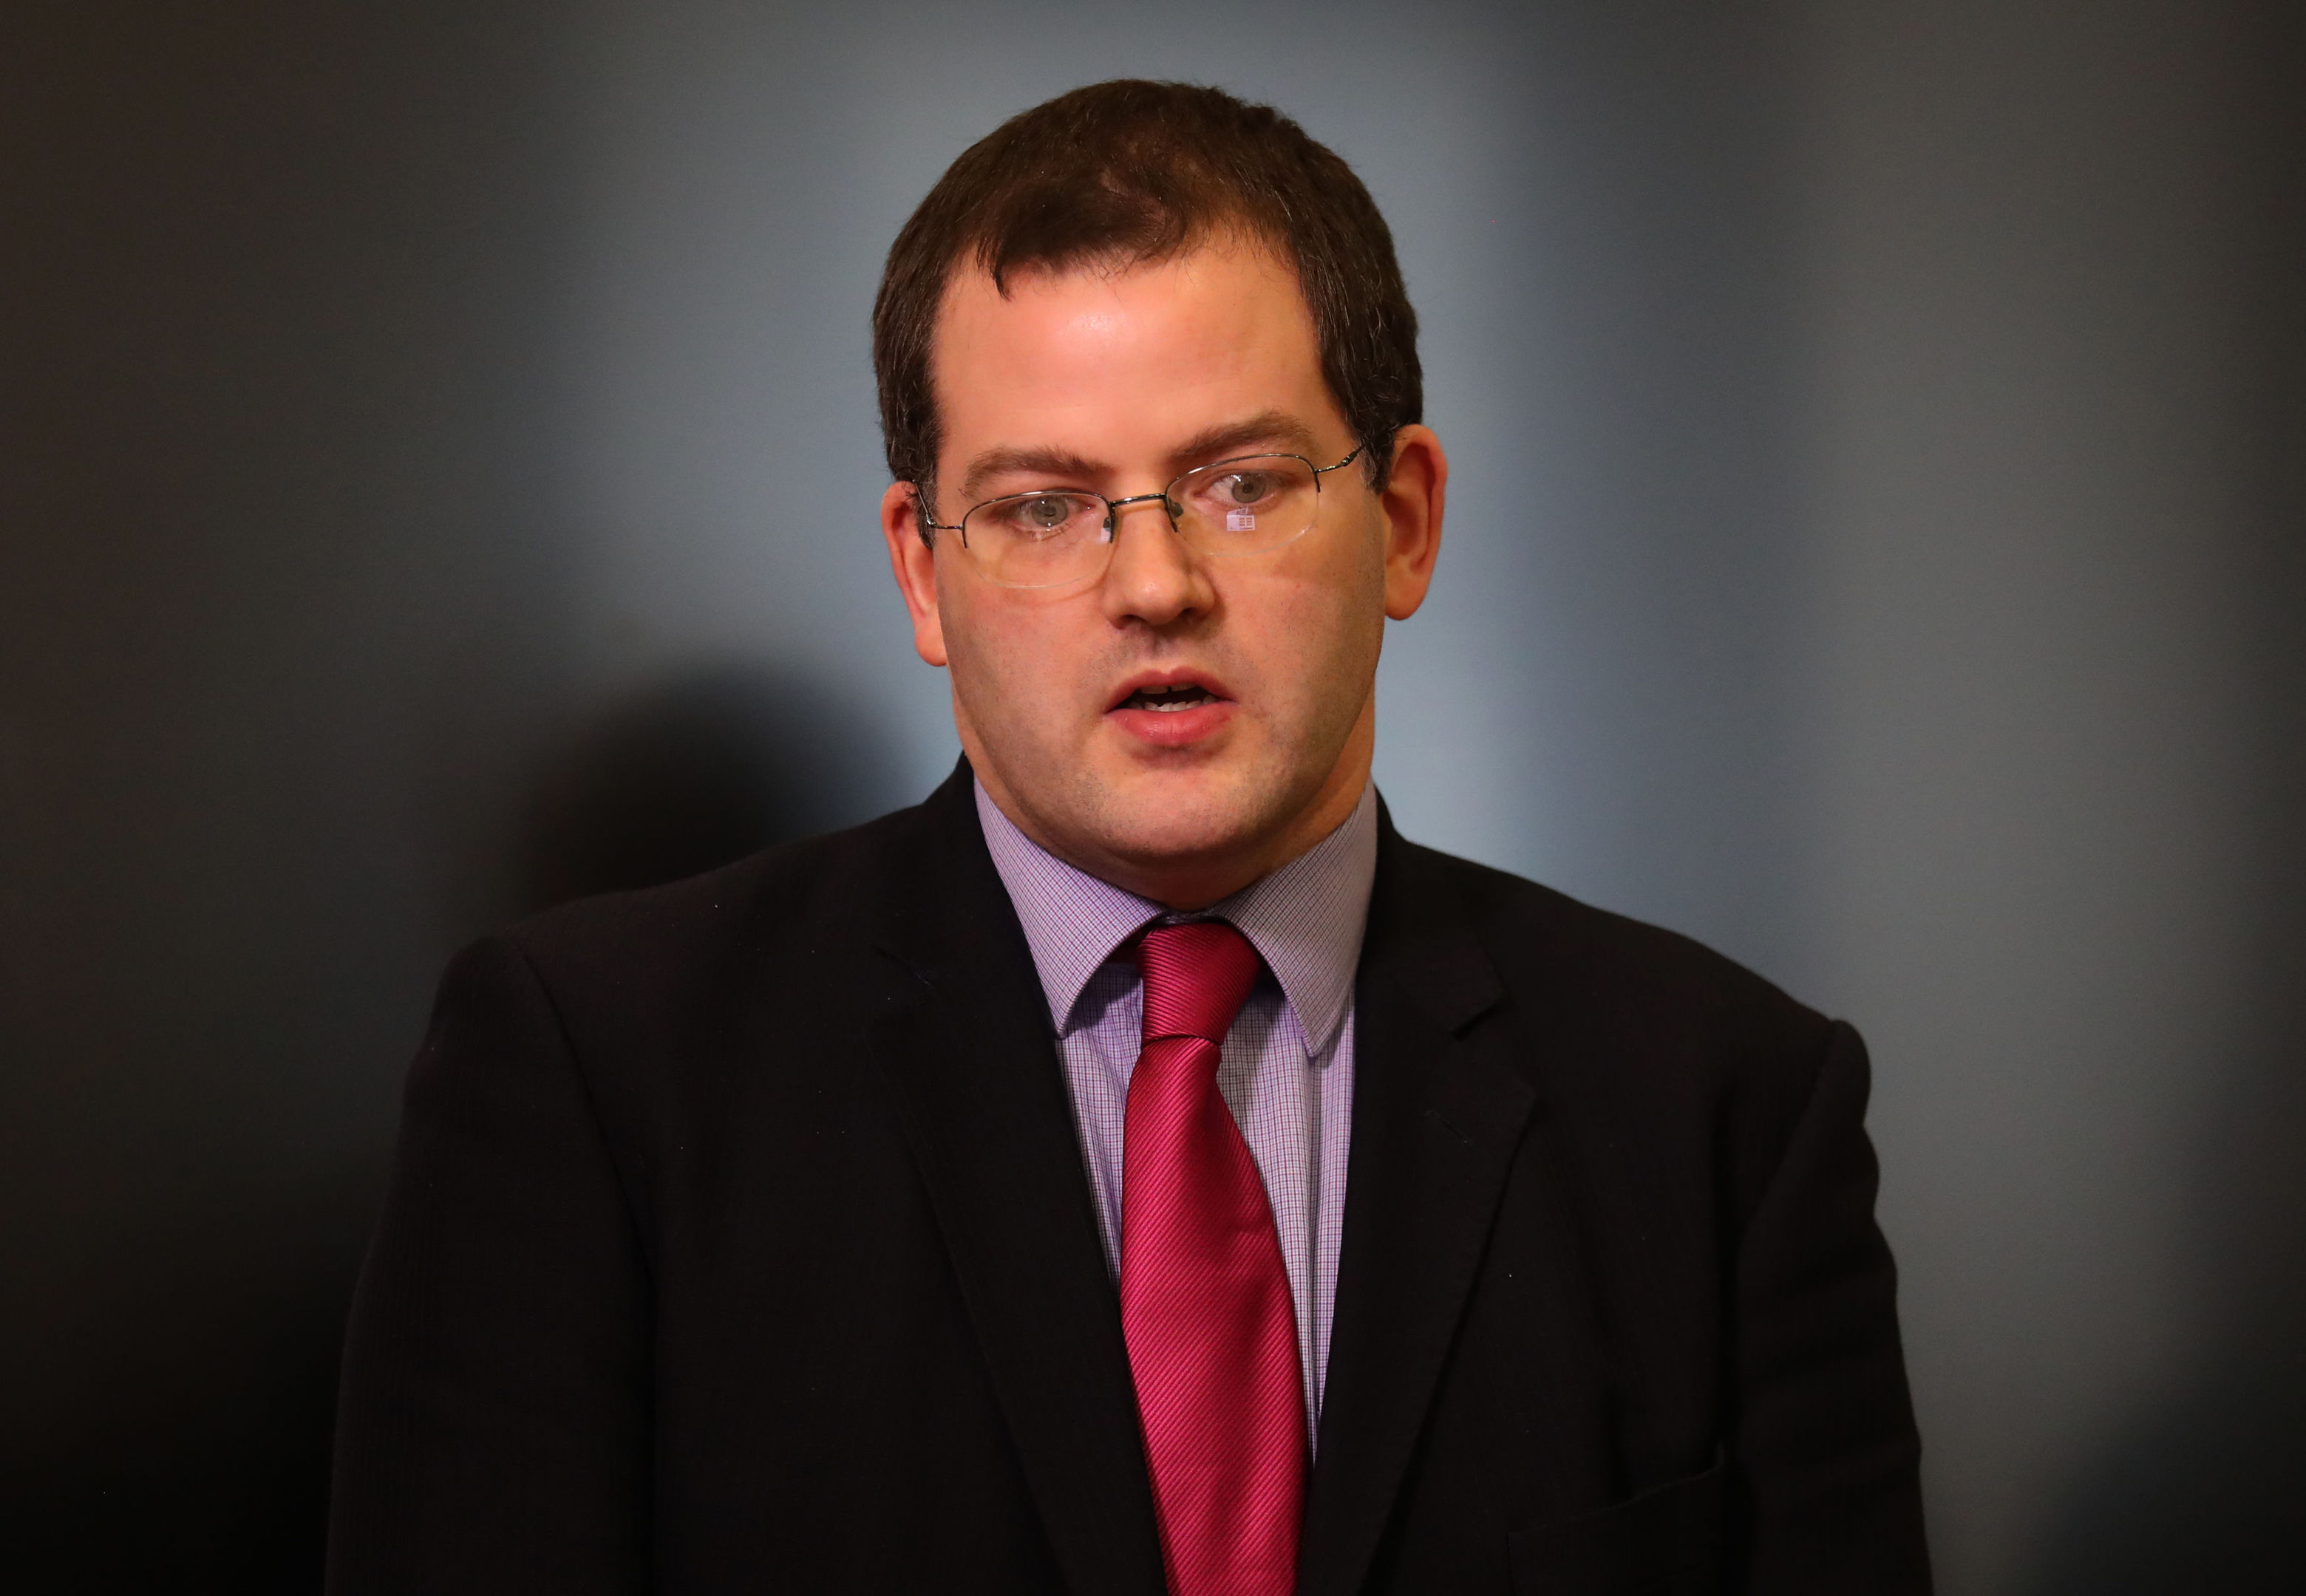 Mark McDonald makes a statement to the media on his return to the Scottish Parliament.